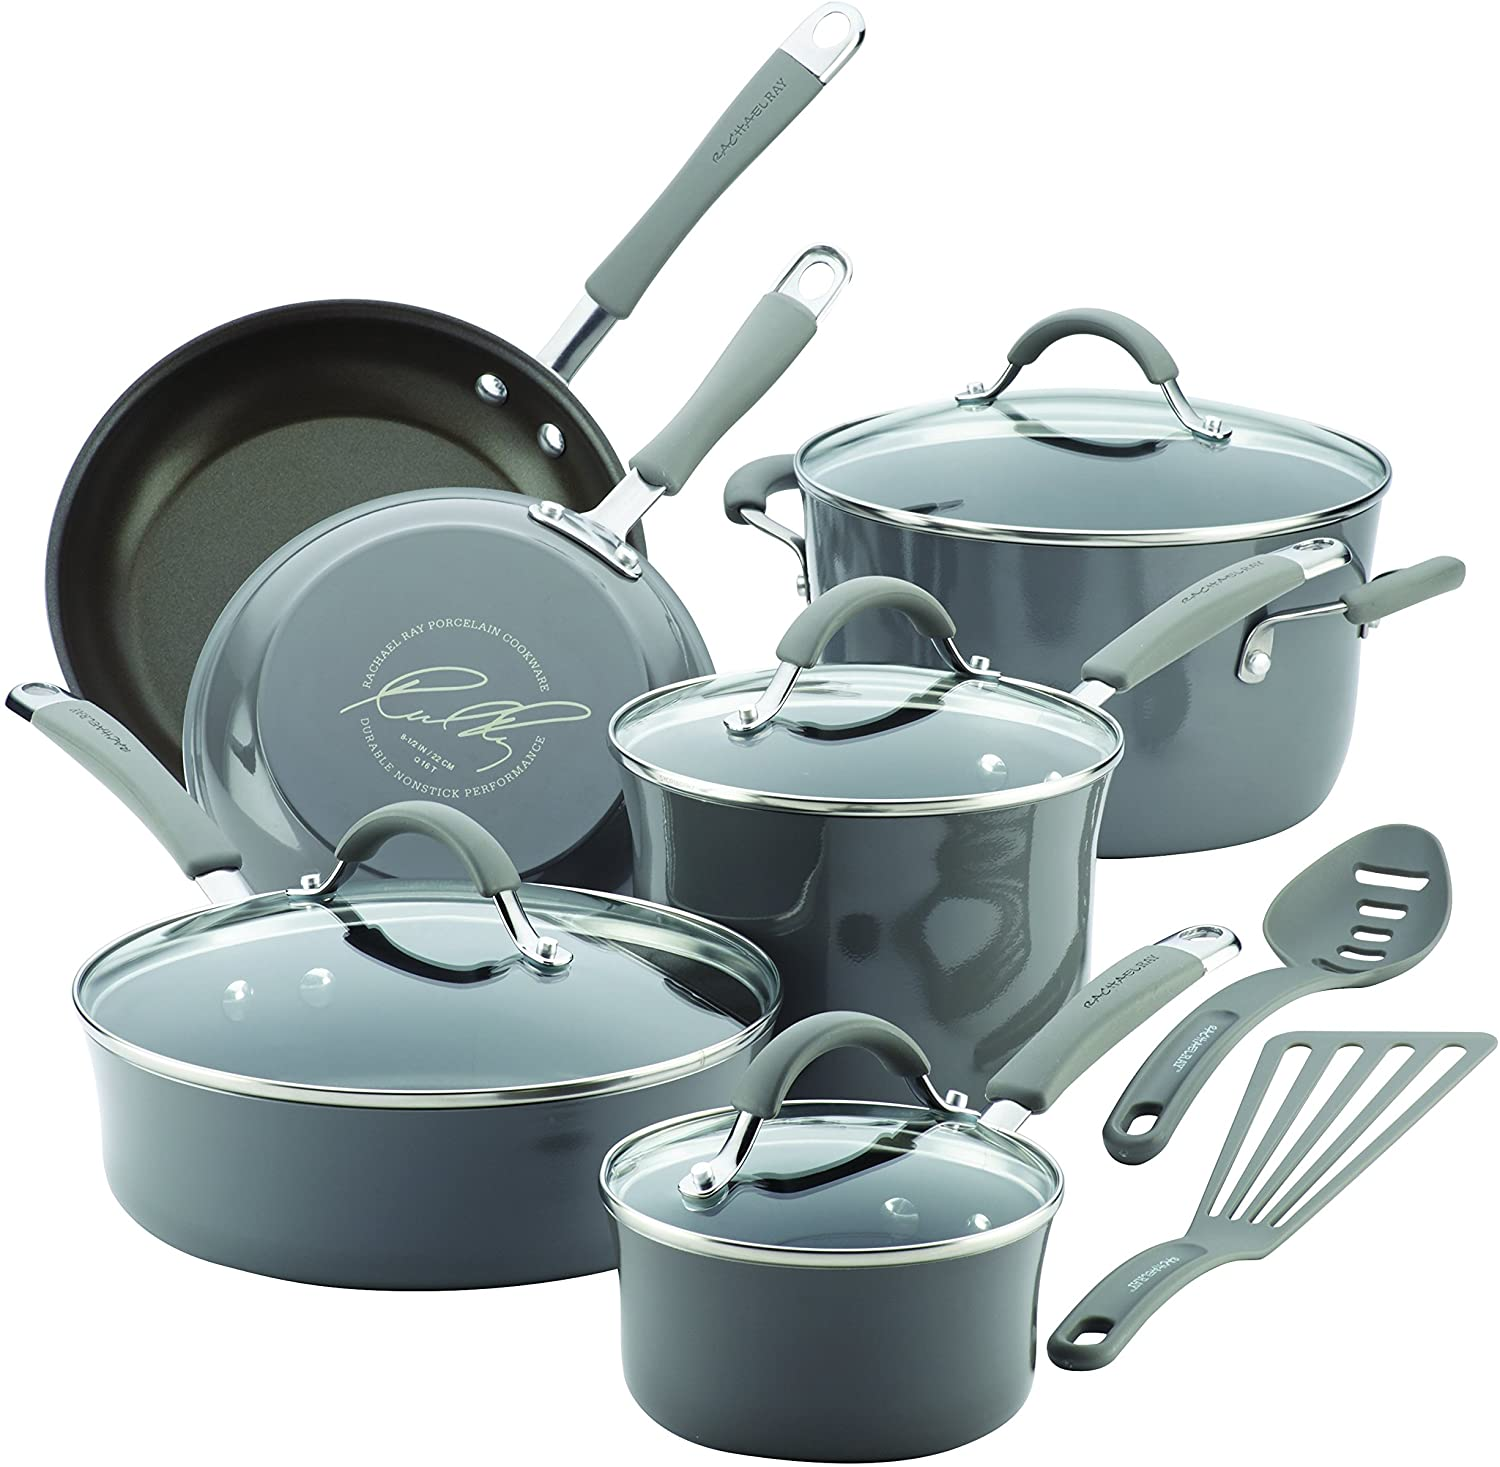 Rachael Ray Cucina Hard Porcelain Enamel Nonstick Cookware for Glass Top Stoves  Image